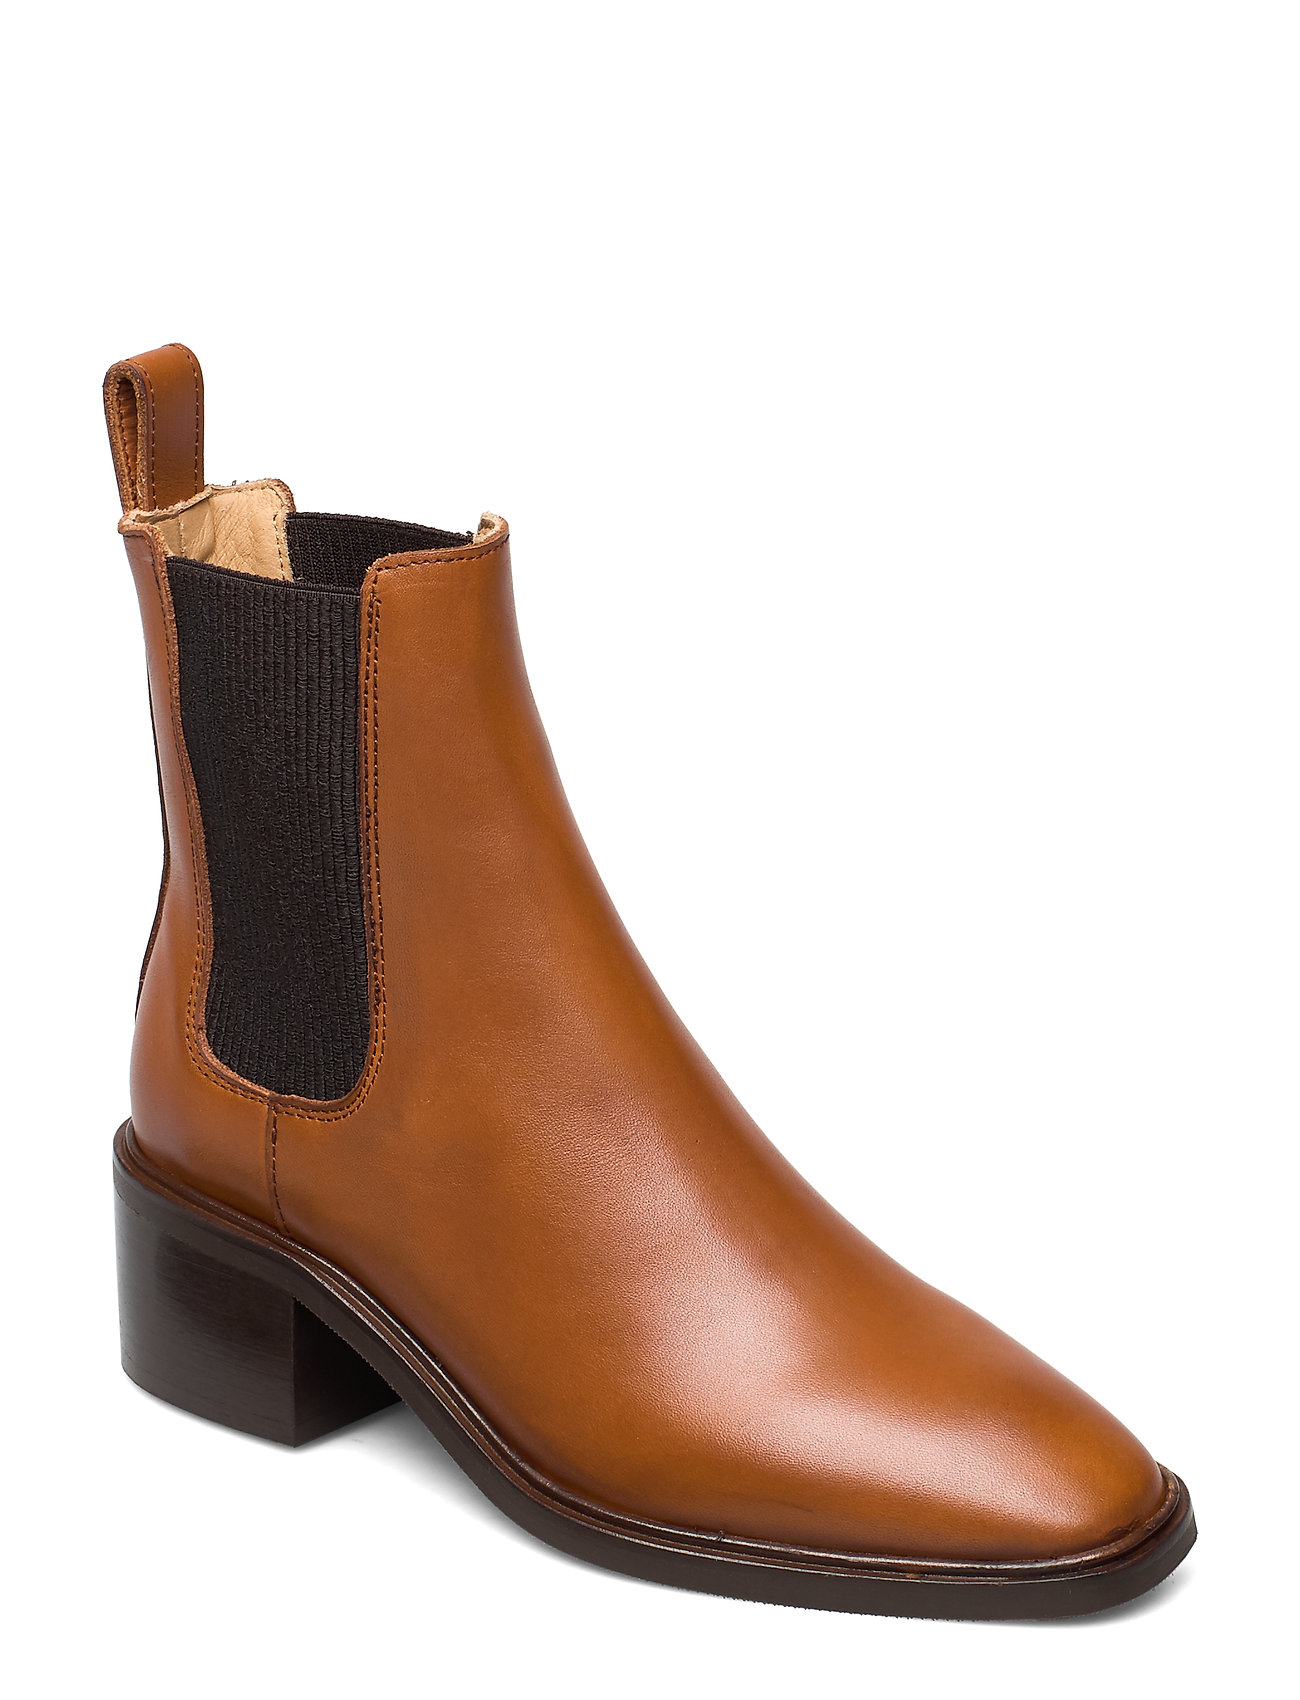 Image of All Day All Night Shoes Boots Ankle Boots Ankle Boot - Heel Brun ANNY NORD (3445363191)